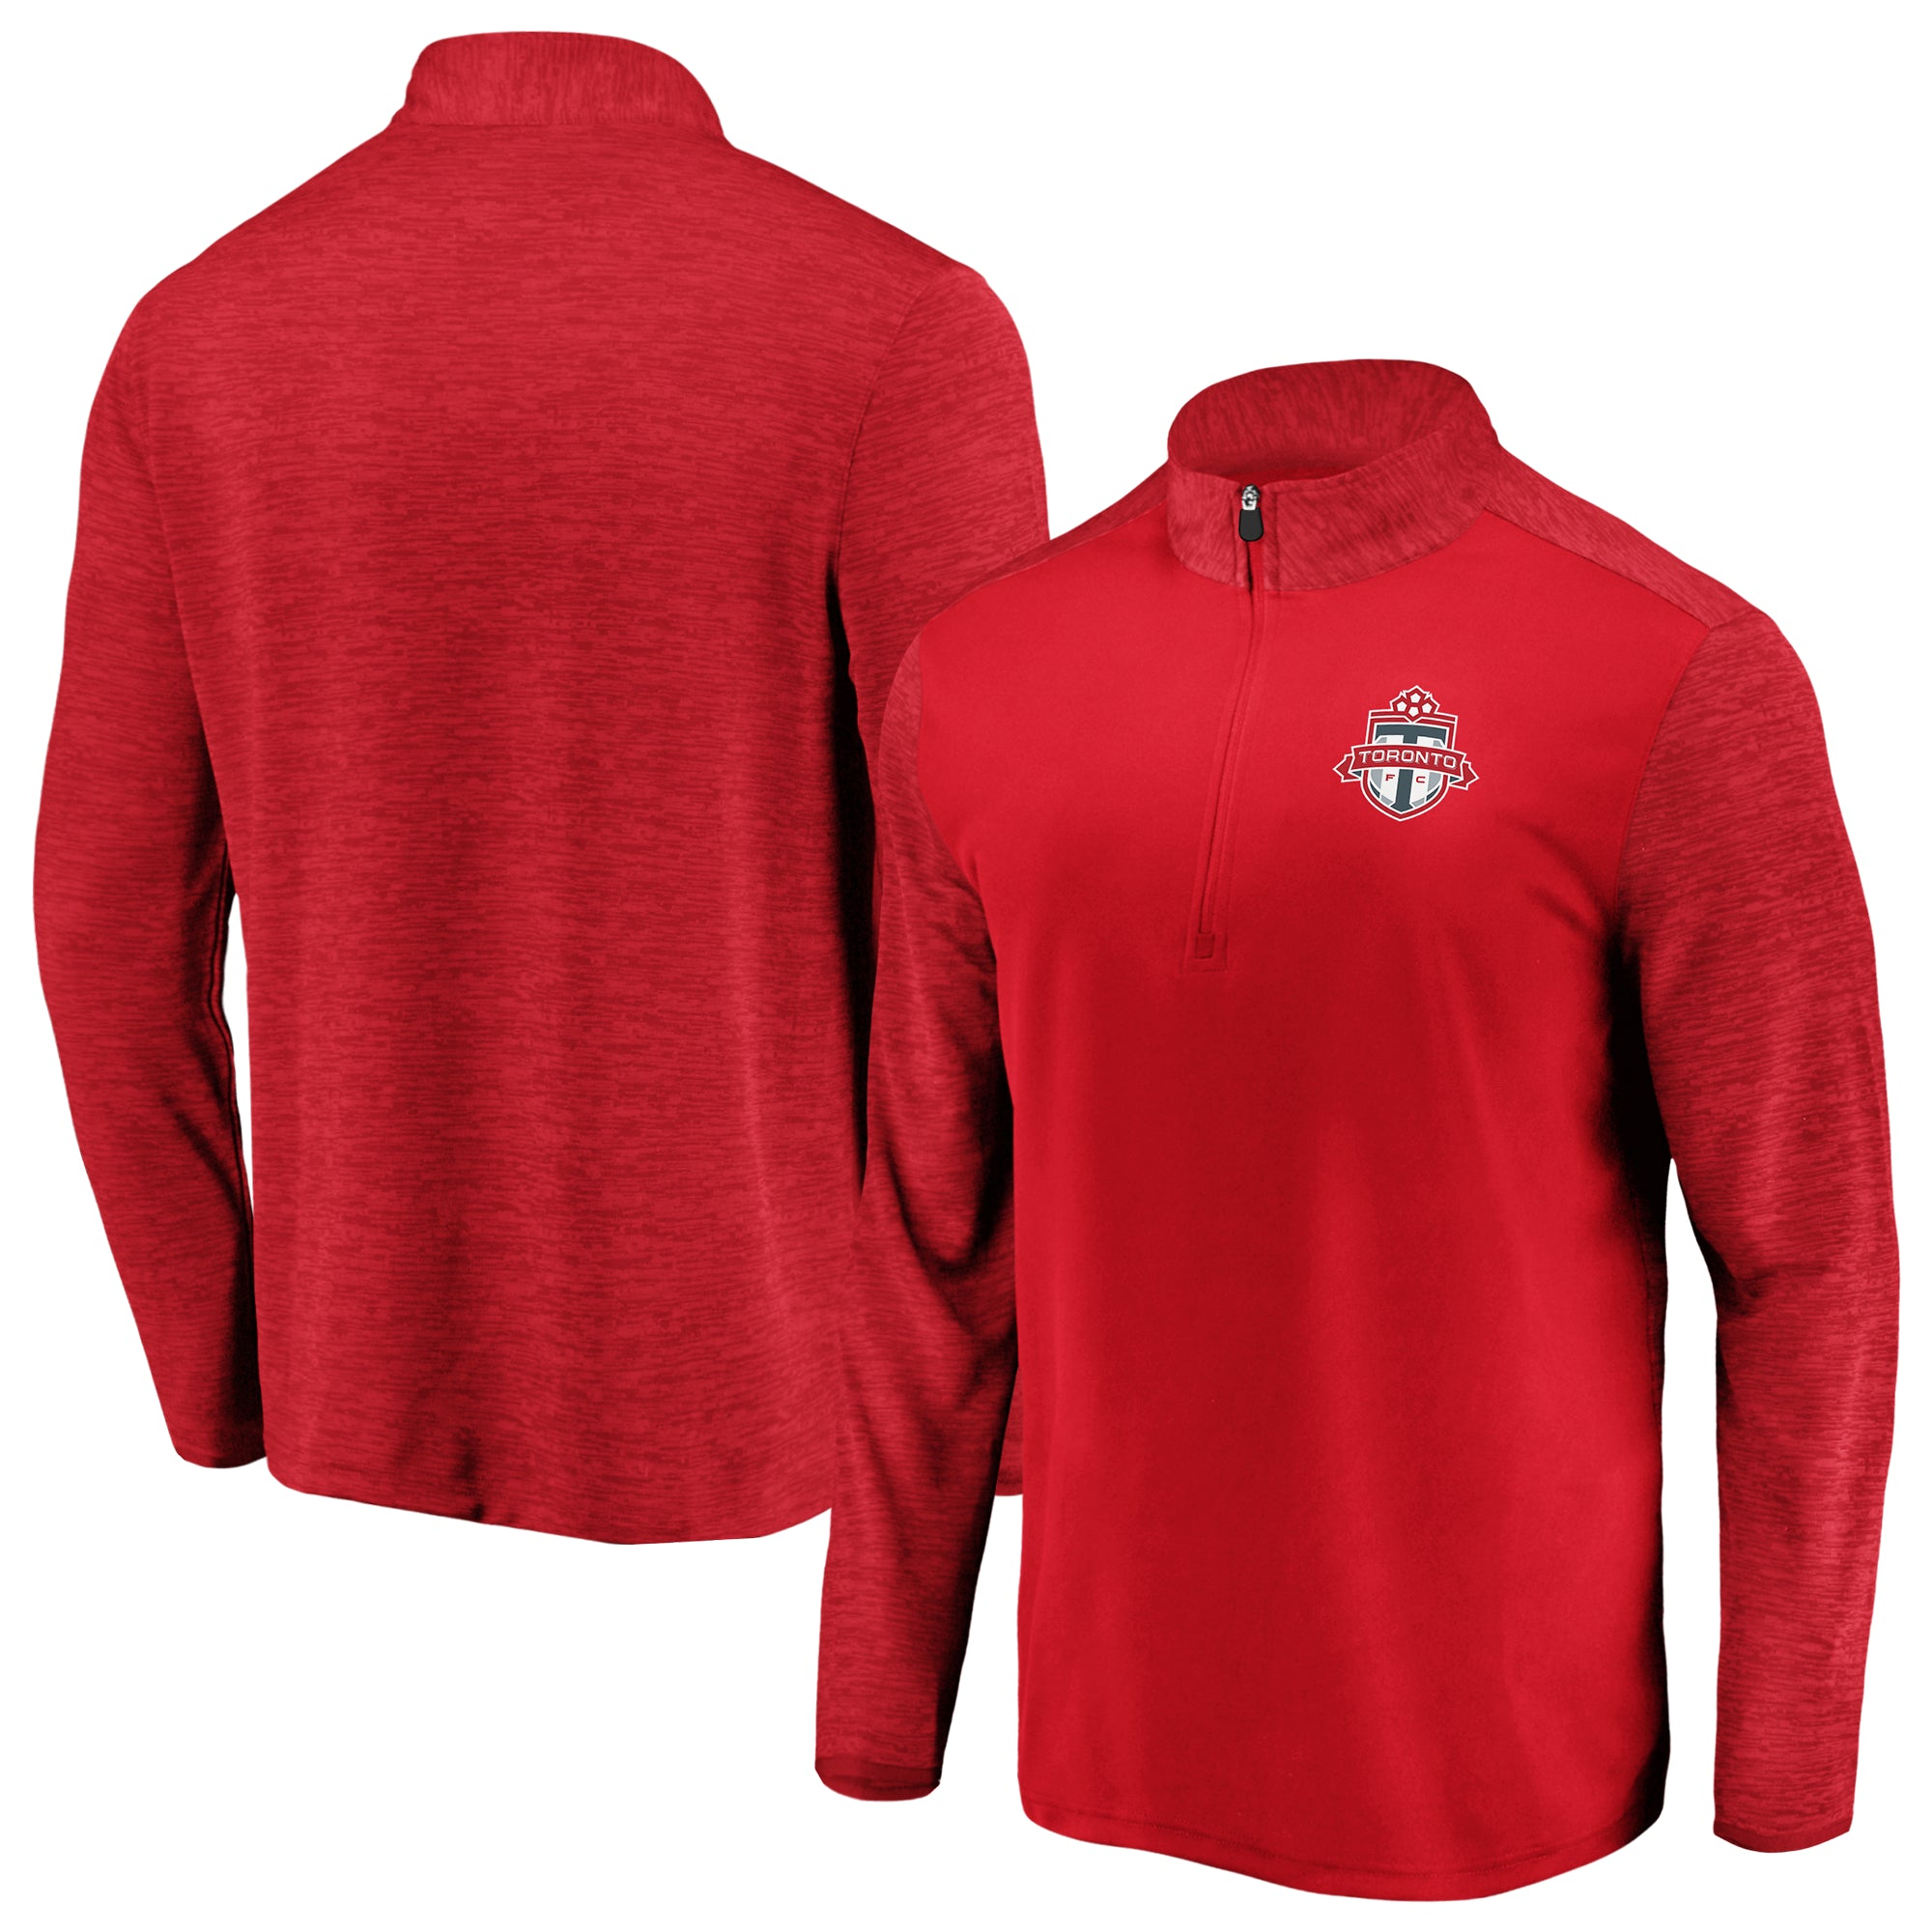 Toronto FC Fanatics Men's Iconic Practice Makes Perfect 1/4 Zip